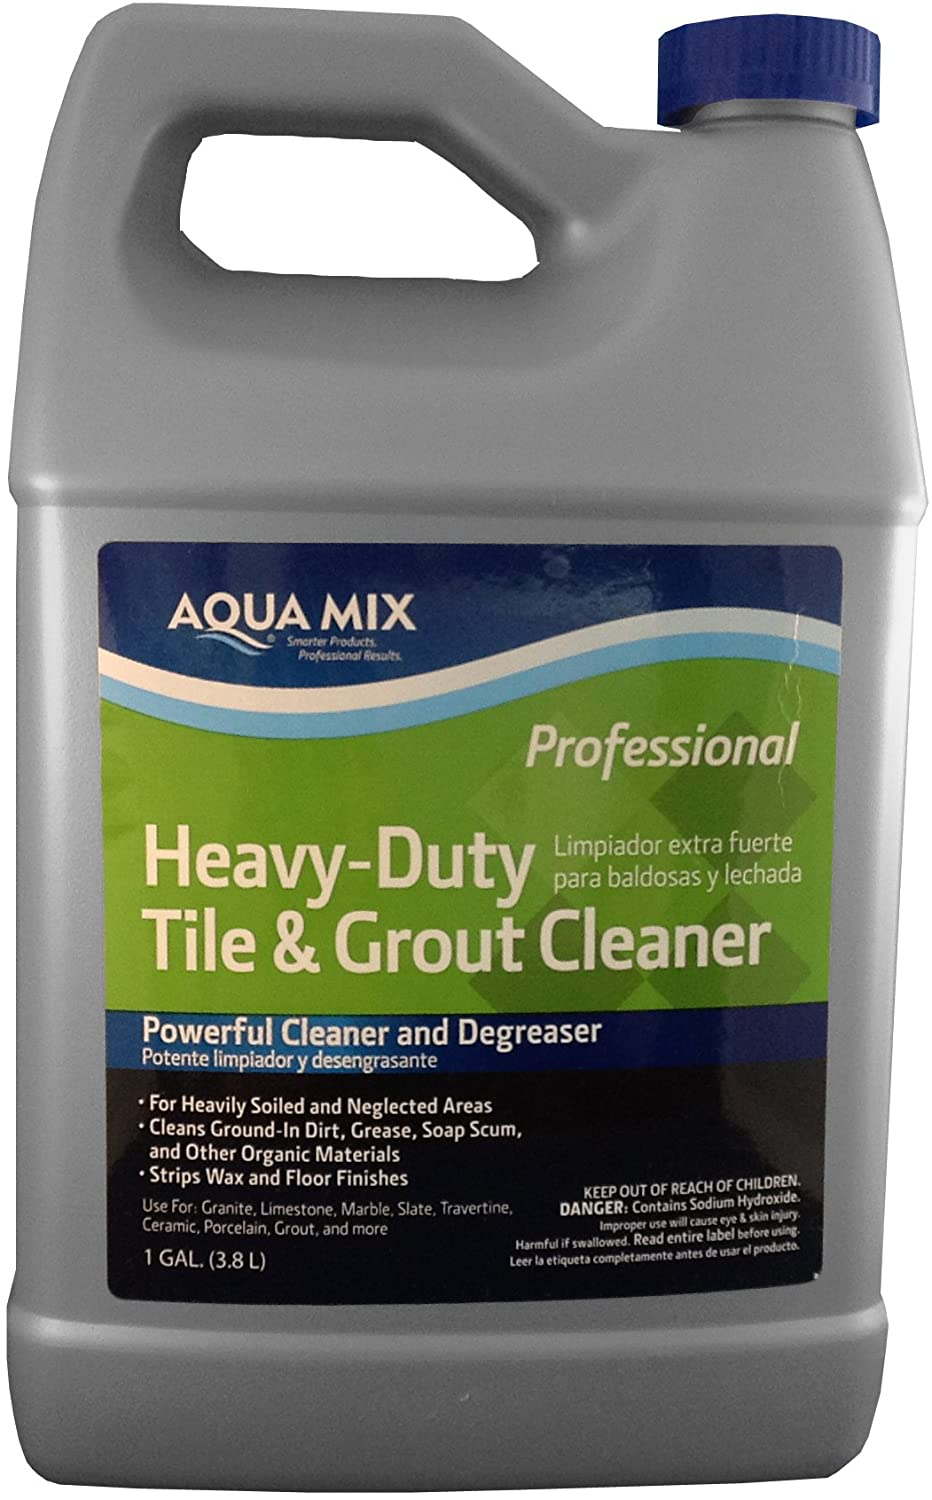 Aqua Mix Heavy Duty Tile and Grout Cleaner - Gallon